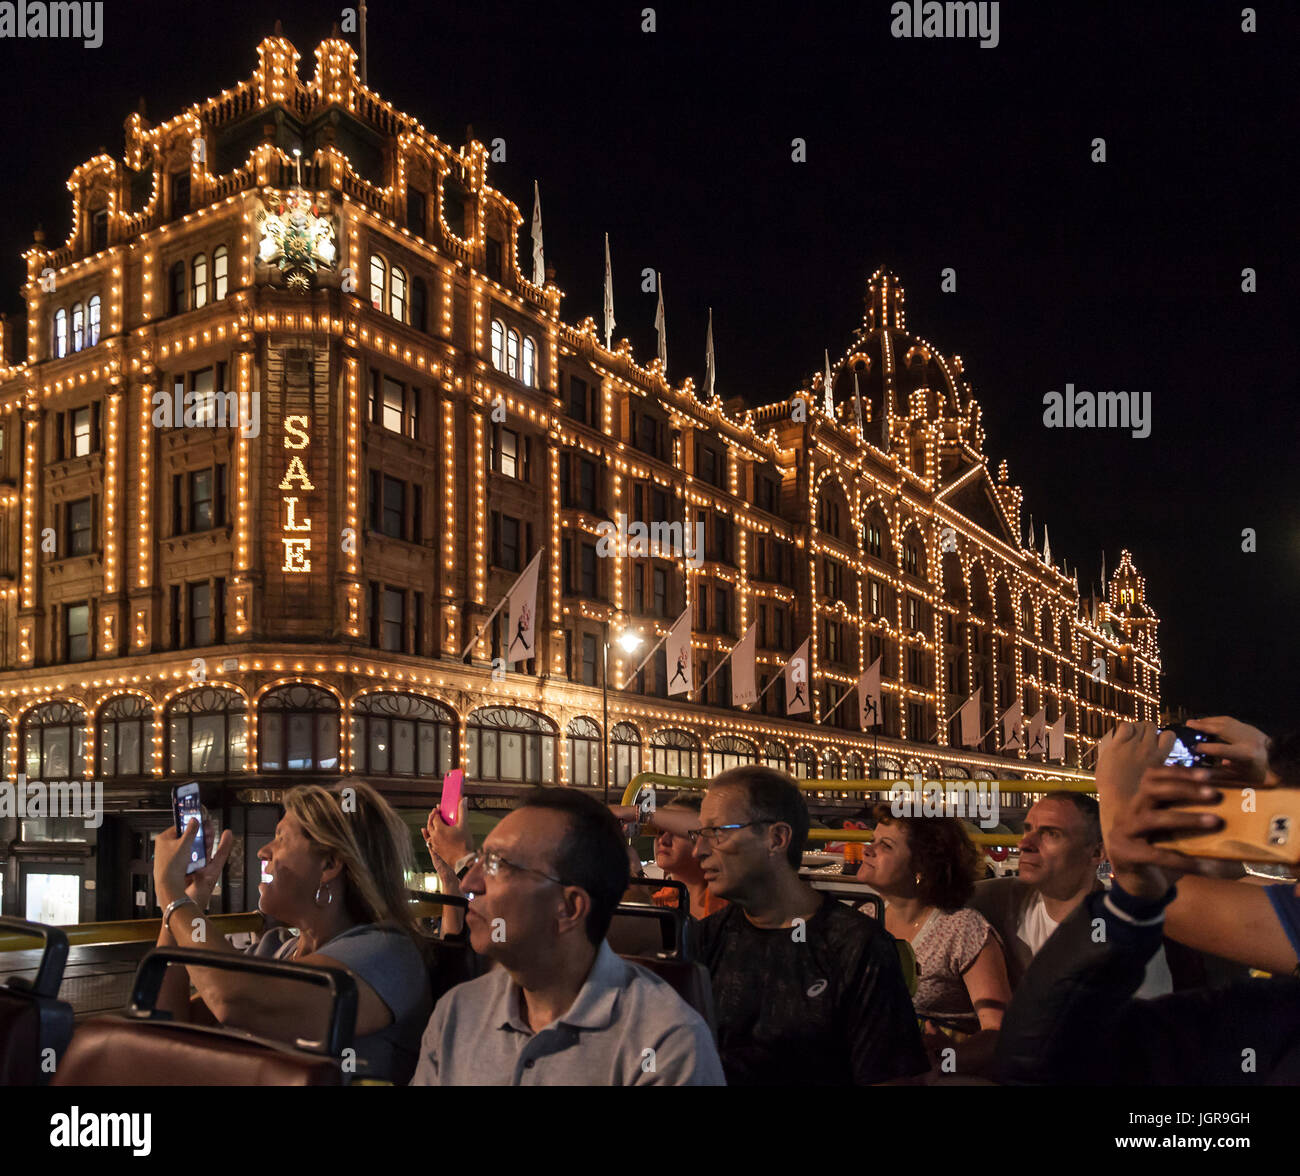 A group of tourists passing the illuminated Harrods Department Store in Knightsbridge, London, during a night open - Stock Image